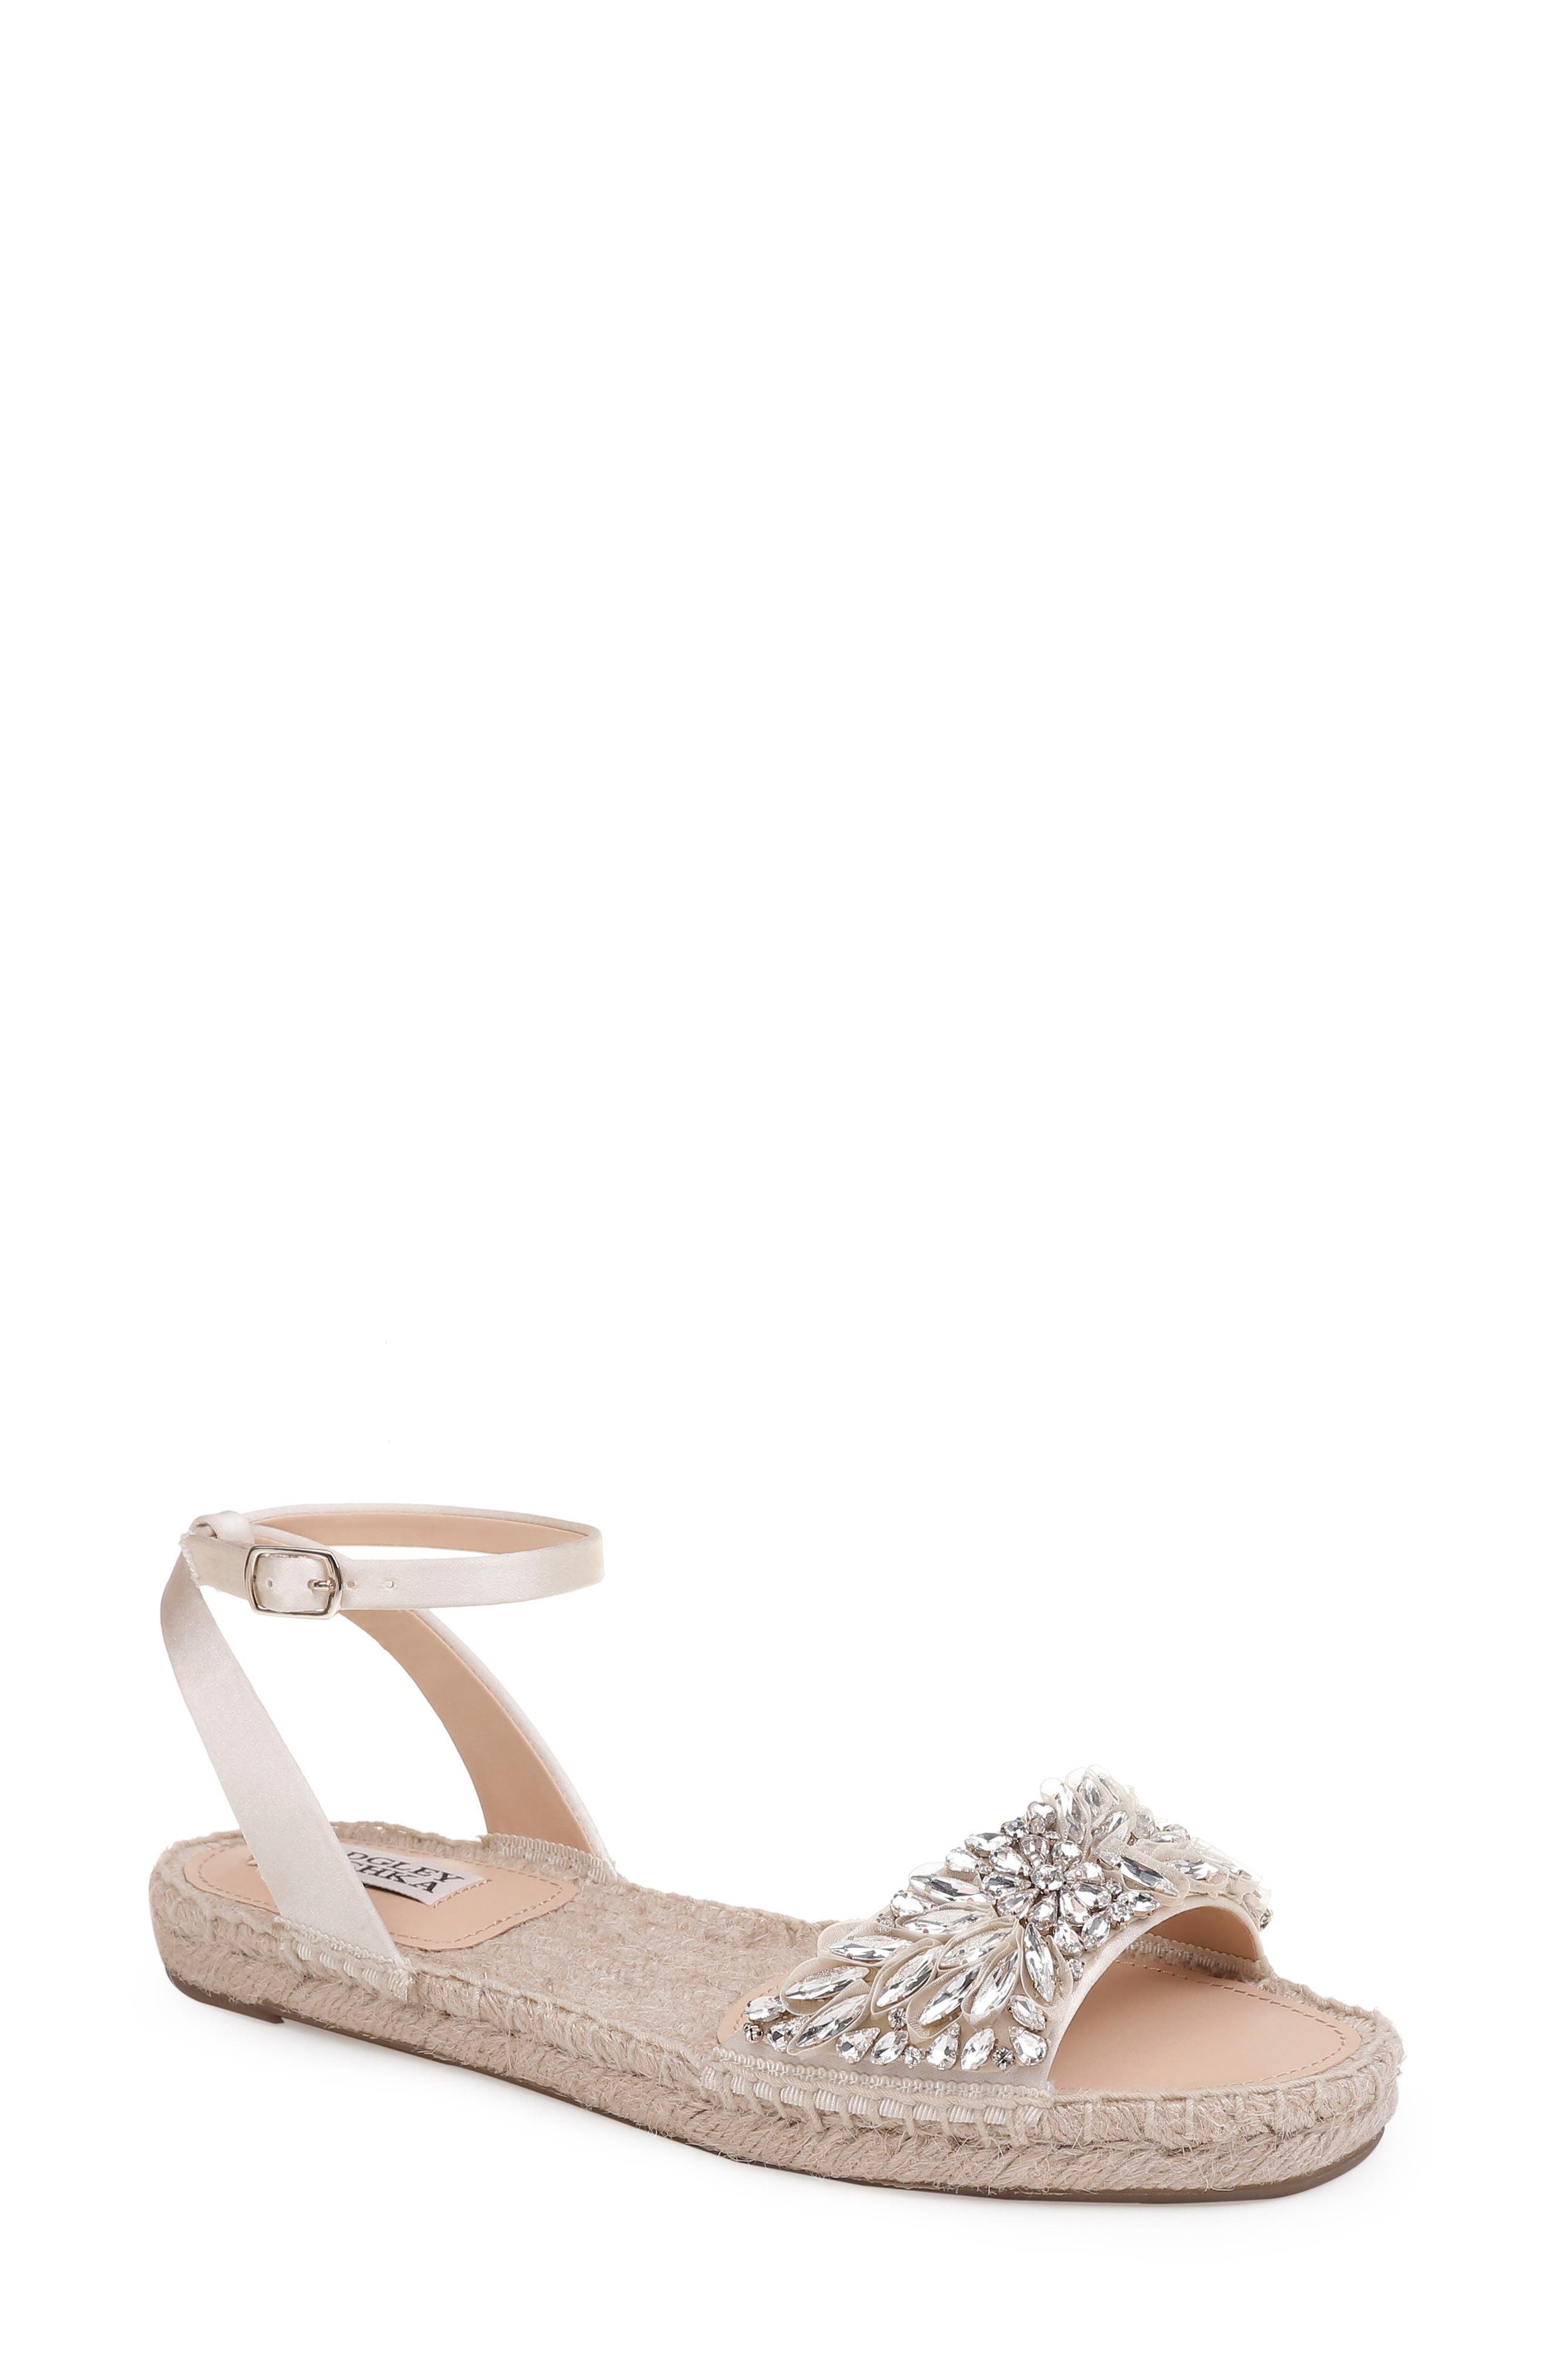 Satine Espadrille Sandal,                             Main thumbnail 1, color,                             Ivory Satin